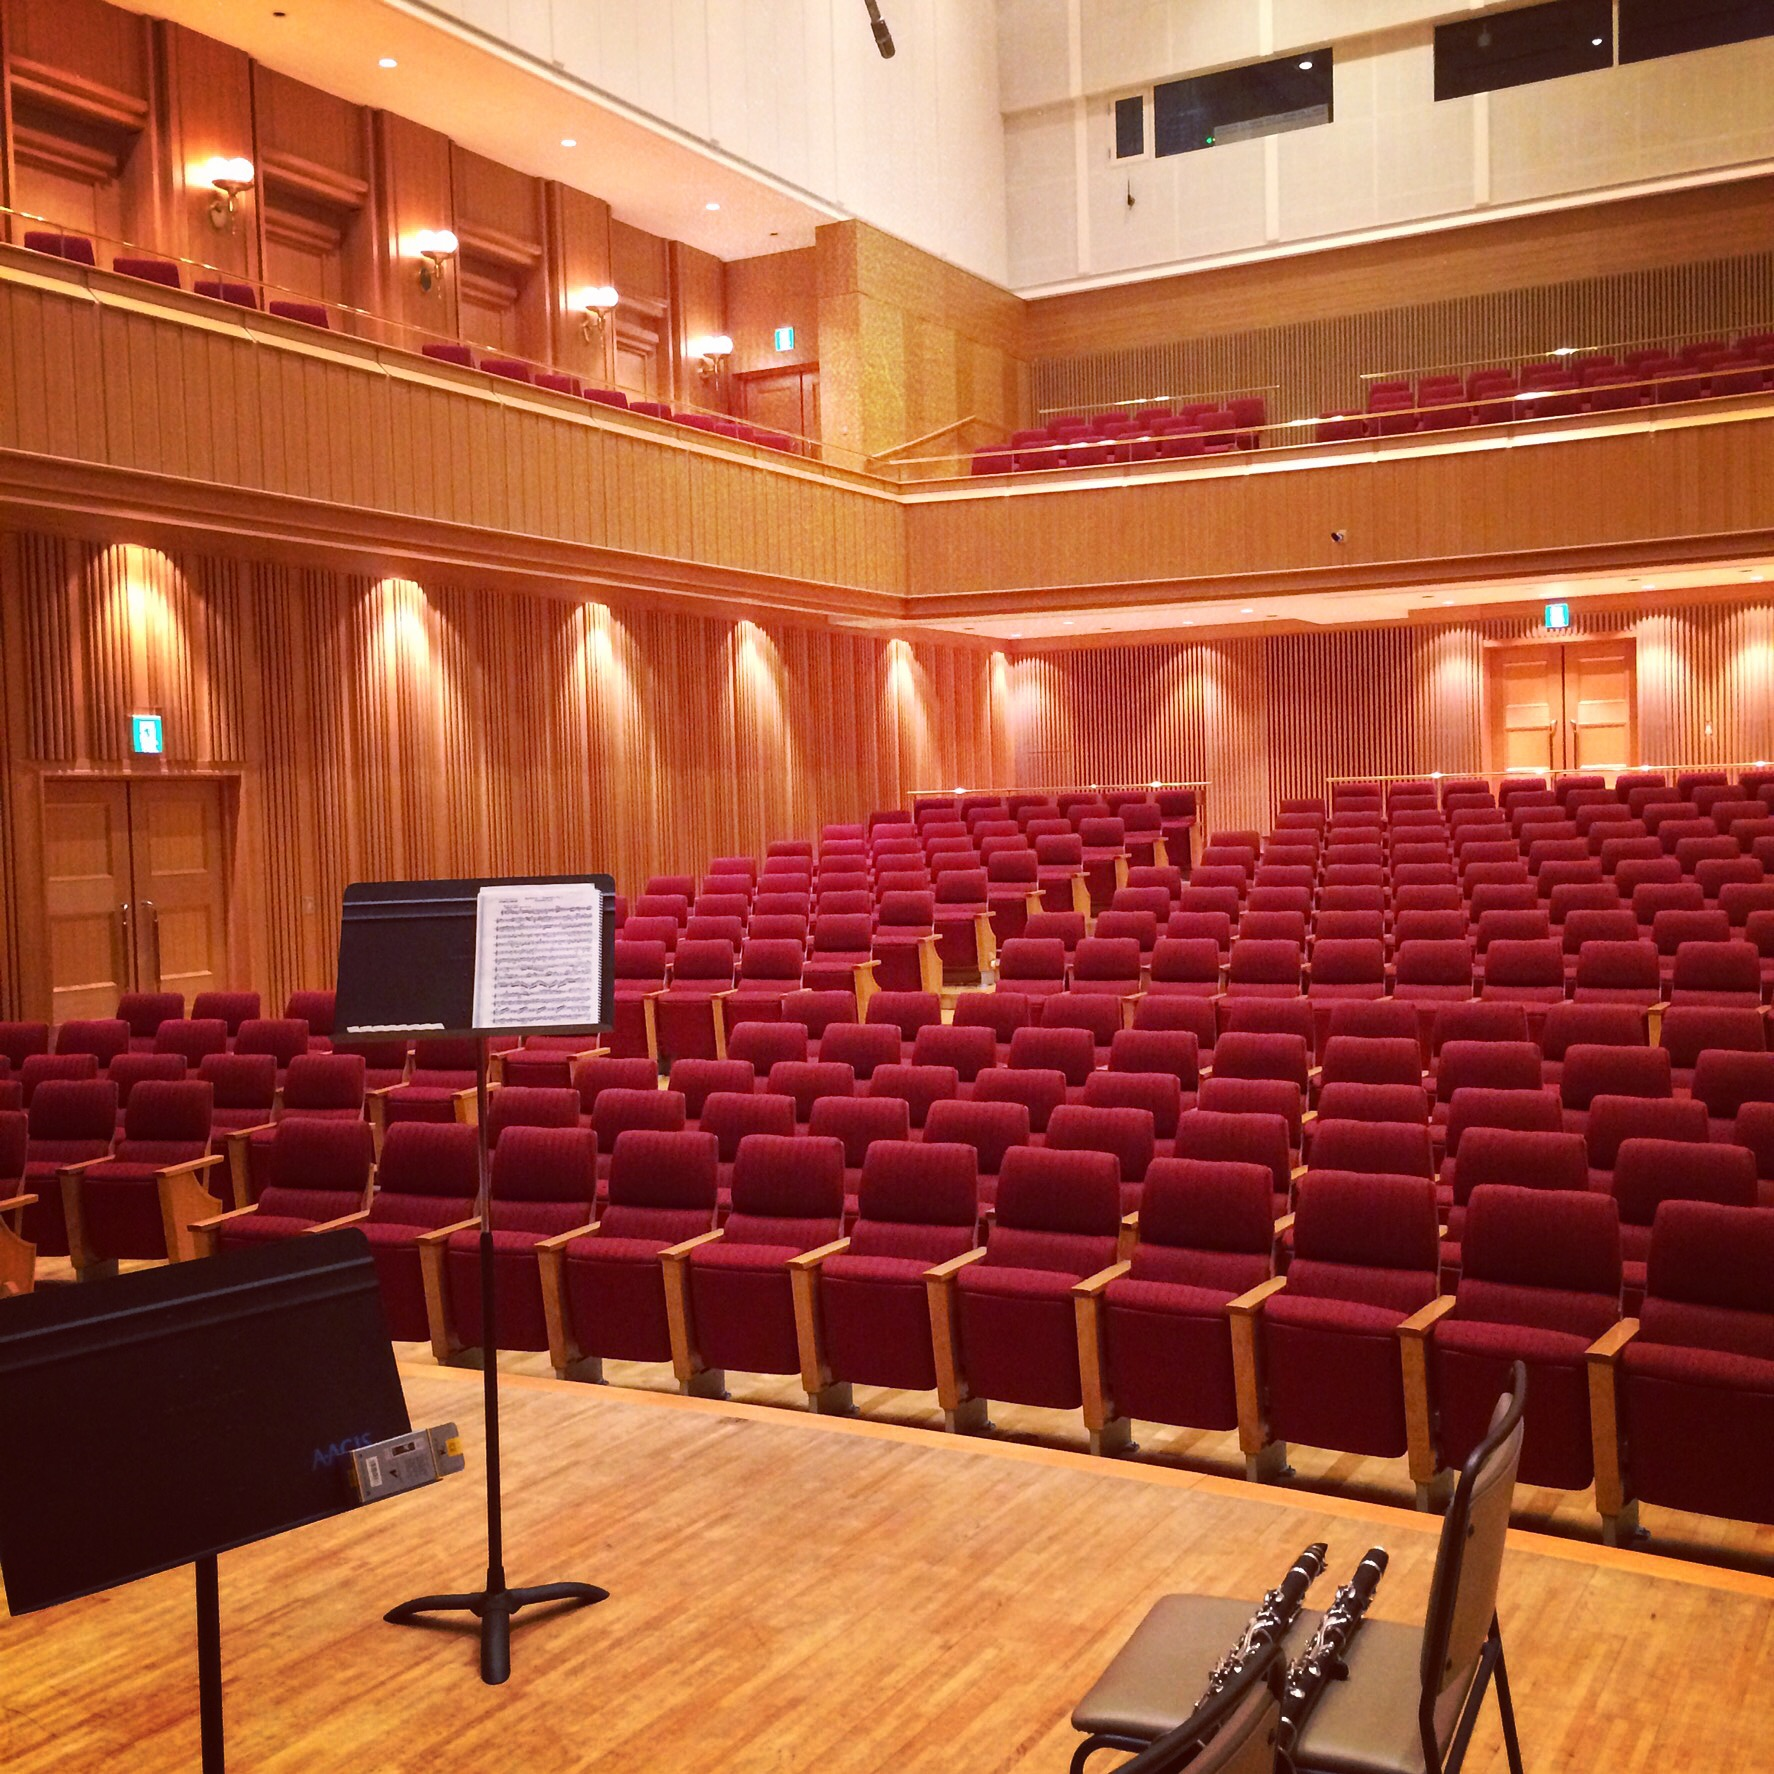 A morning practice session at Pacific Music Festival, Small Hall at Sapporo Kitara Concert Hall (Sapporo, Japan)